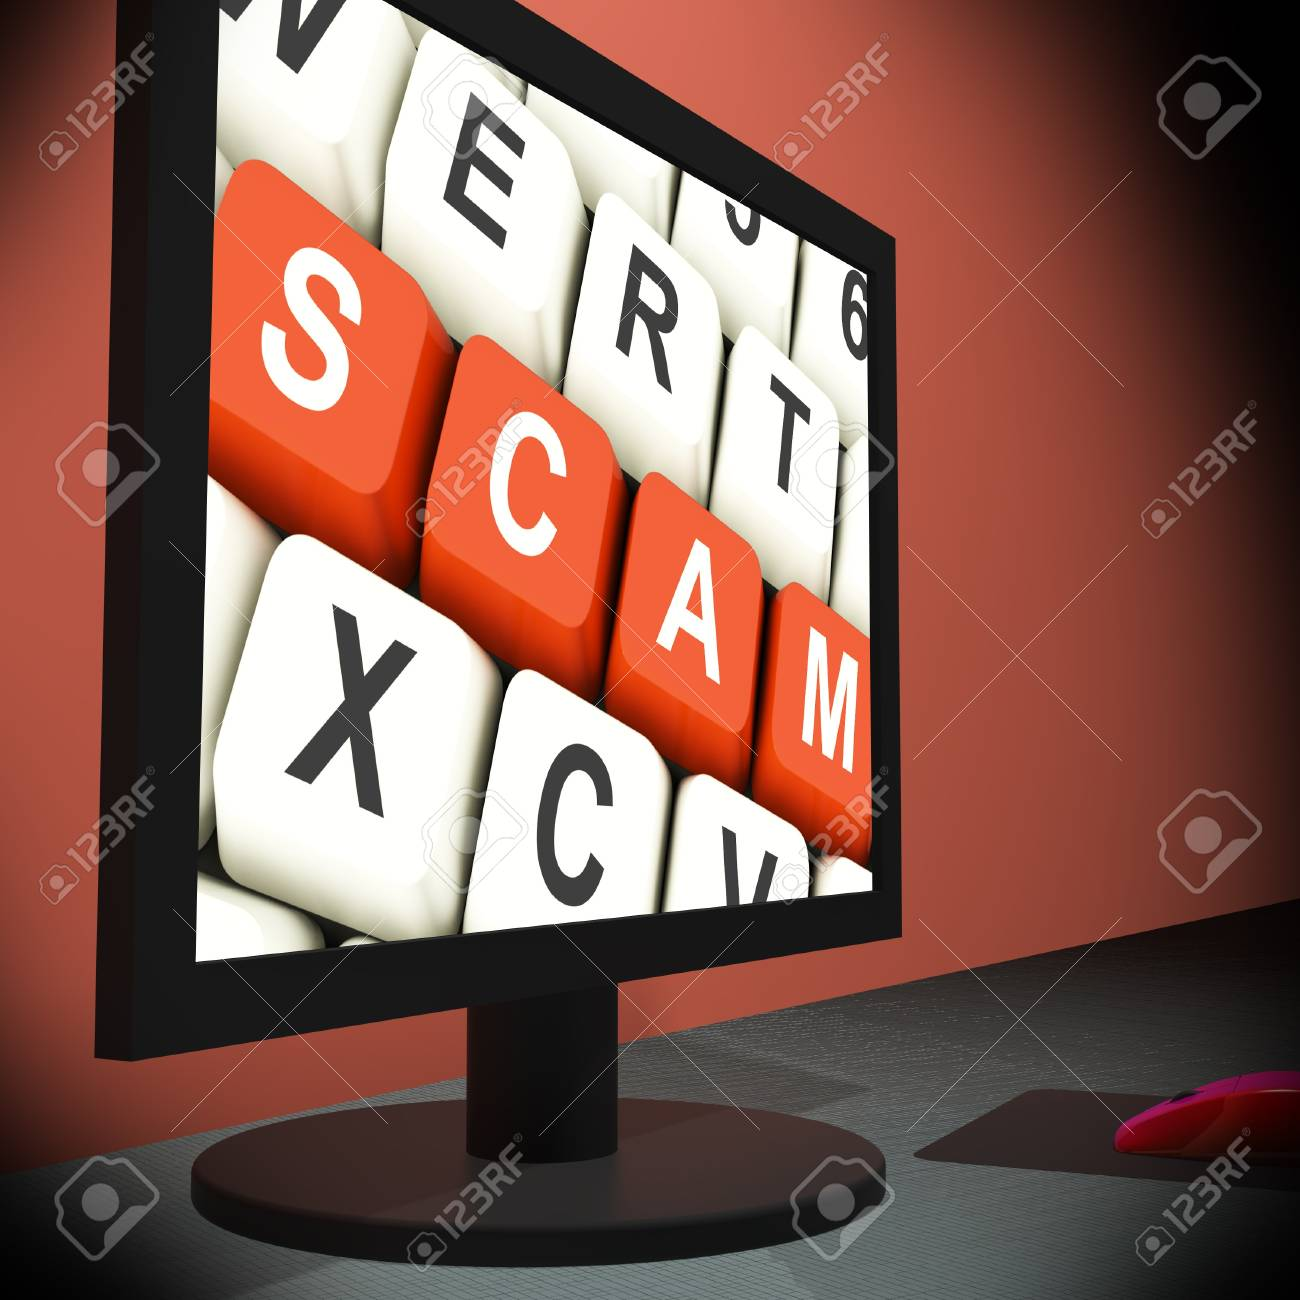 Scam On Monitor Showing Schemes And Deceits Stock Photo - 18407397